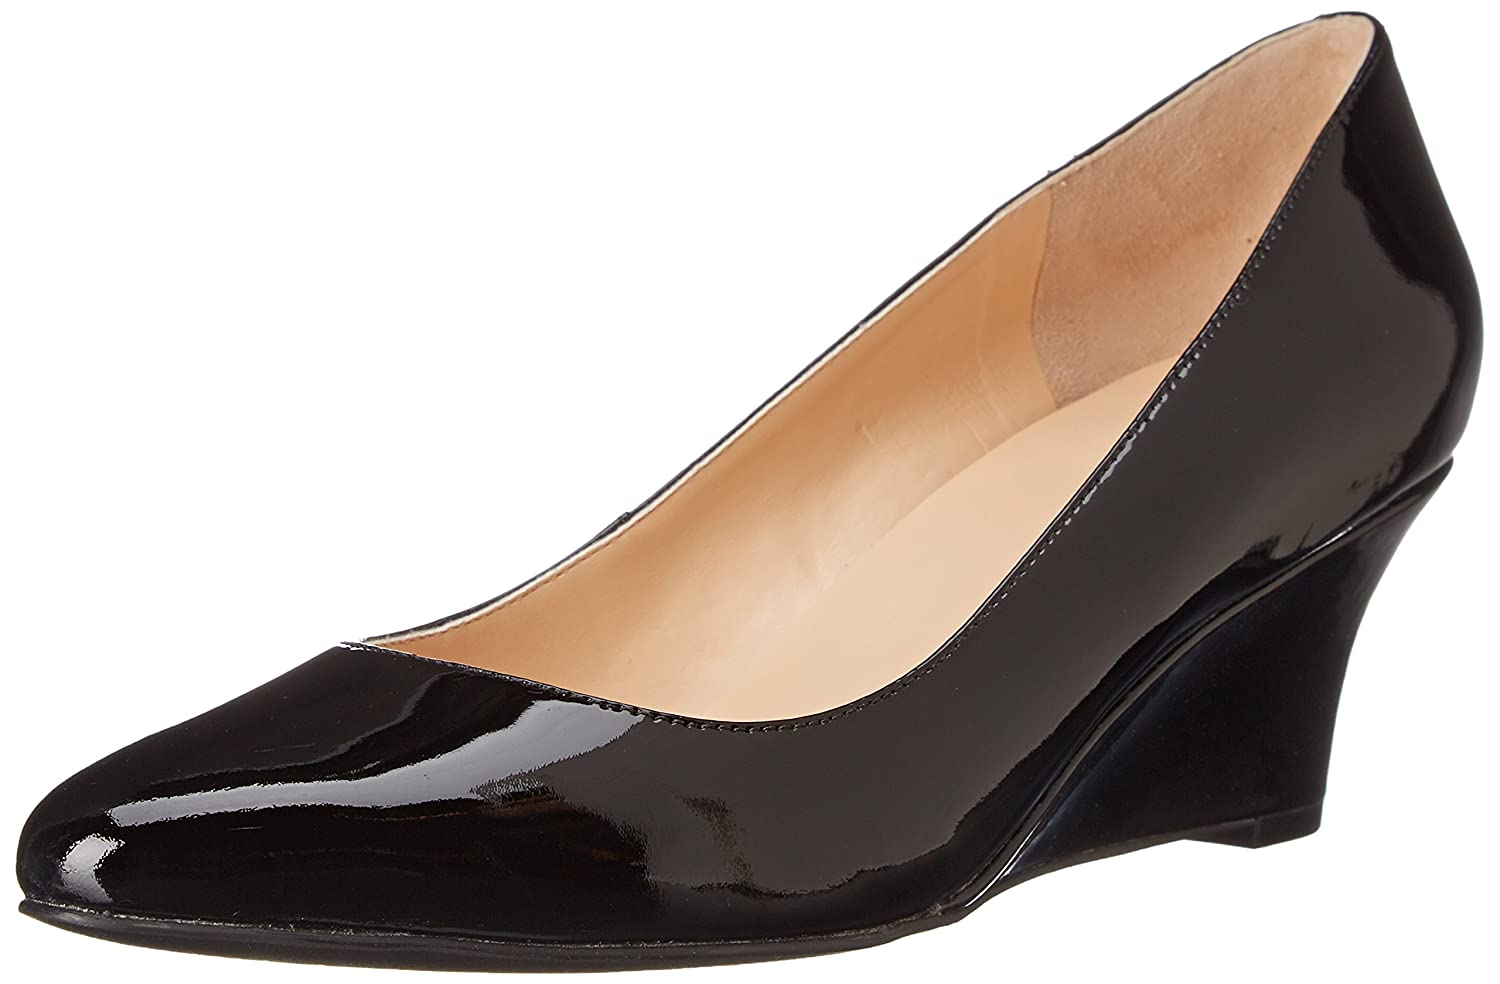 Cole Haan Women's Catalina Wedge Pump B000MLFBJM 6.5 B(M) US|Black Patent